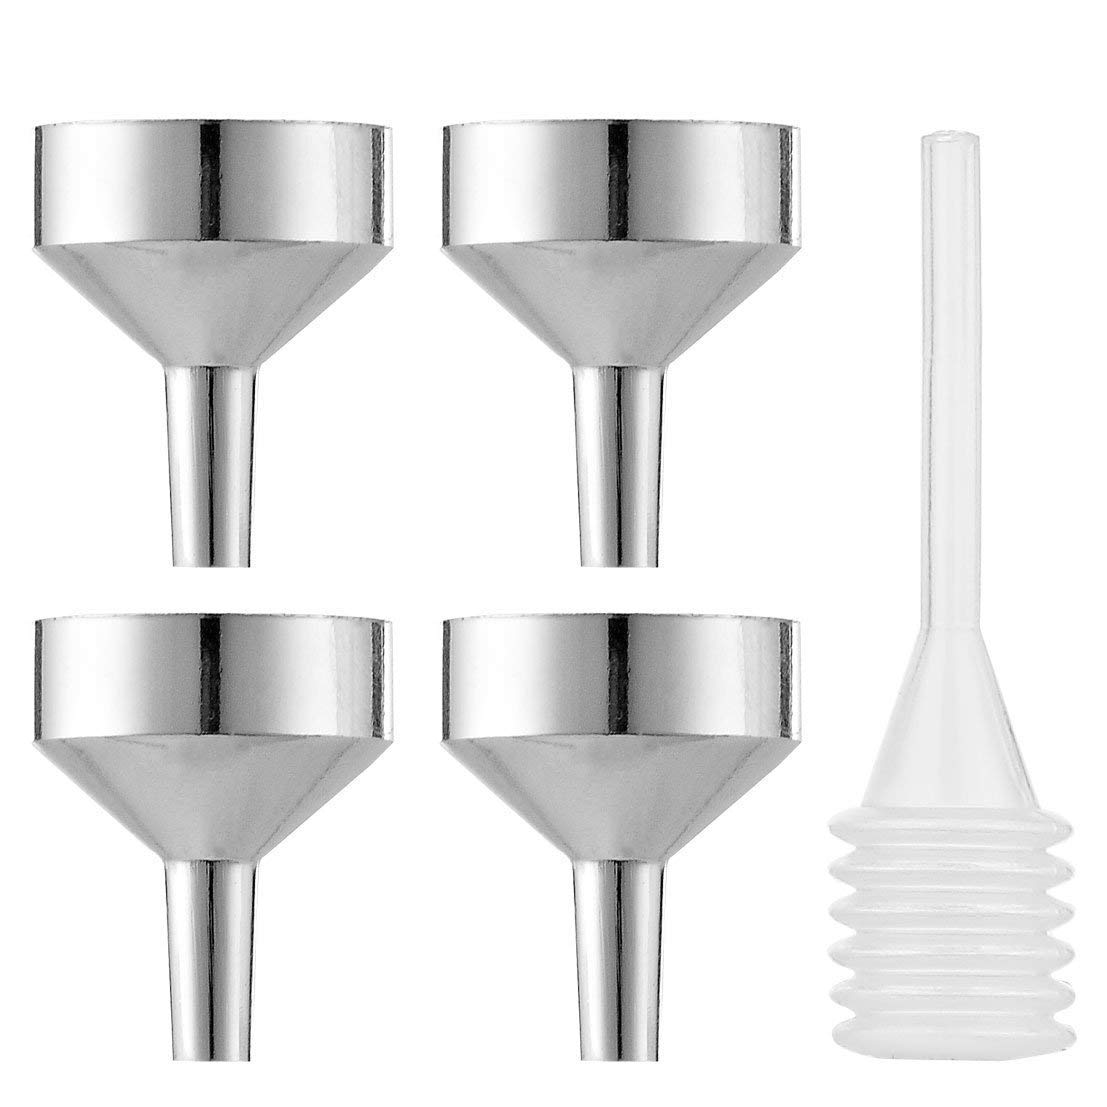 4 Pcs Metal Mini Funnel with Pipette | Small Tiny Perfume Funnel for Transfer Liquid Bottle - Cosmetic Samples Essential Oil, Lotion, Cologne, Mascara, Atomizer, Fragrance (Silver)